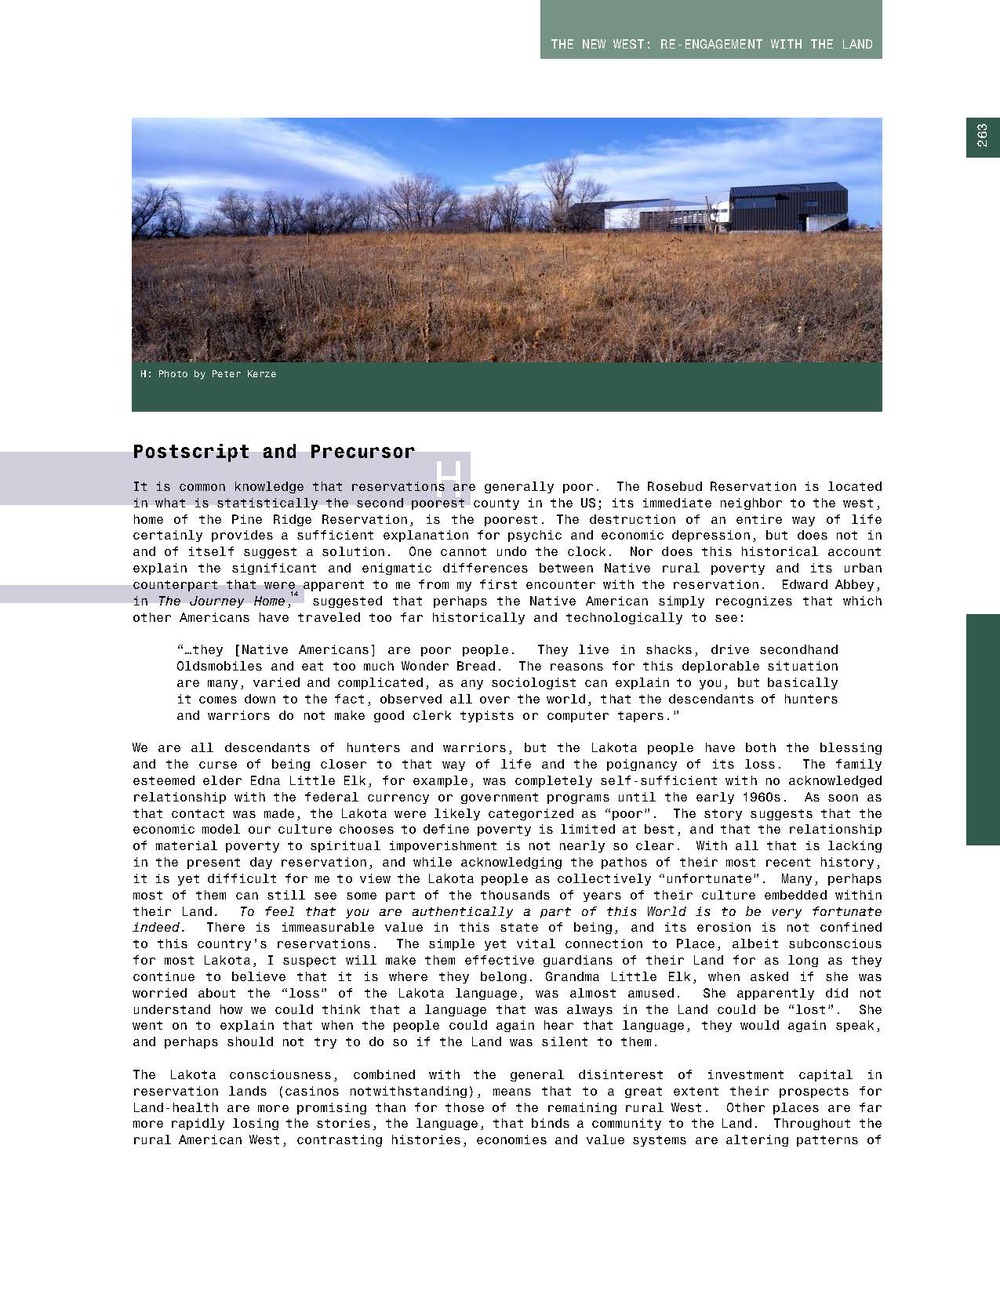 UT New West Land Co Article_Page_10.jpg